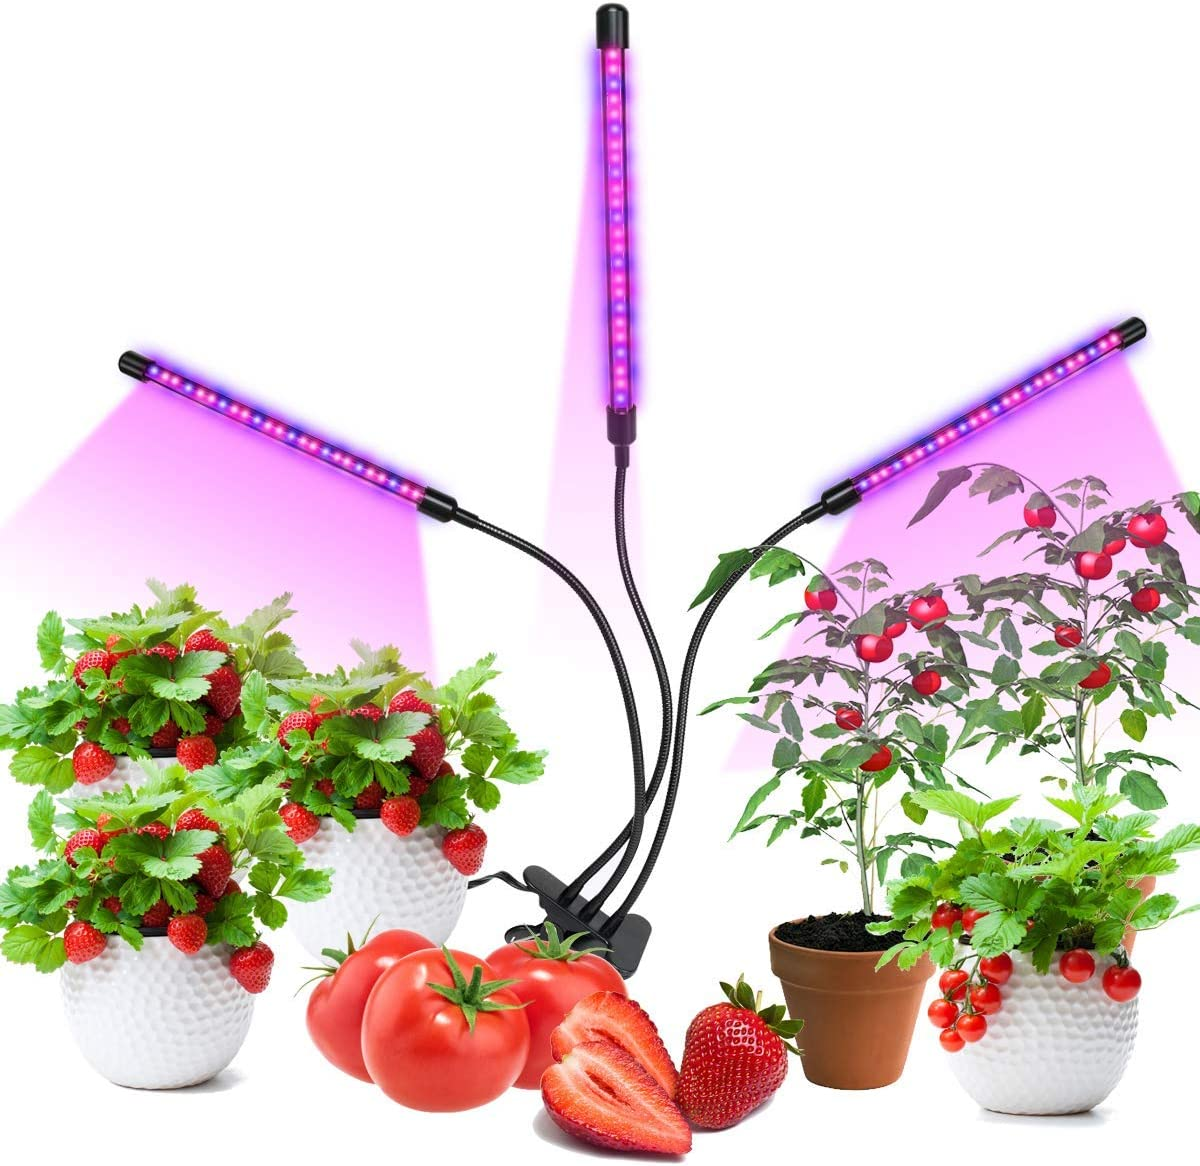 Ustyle Grow Light, Grow Lights for Indoor Plants, 45W 90 LED Bulbs Timming Plant Grow Lamp with Red, Blue Spectrum, 3 9 12H Timer, 3-Head Divide Control Adjustable Gooseneck, 8 Dimmable Levels